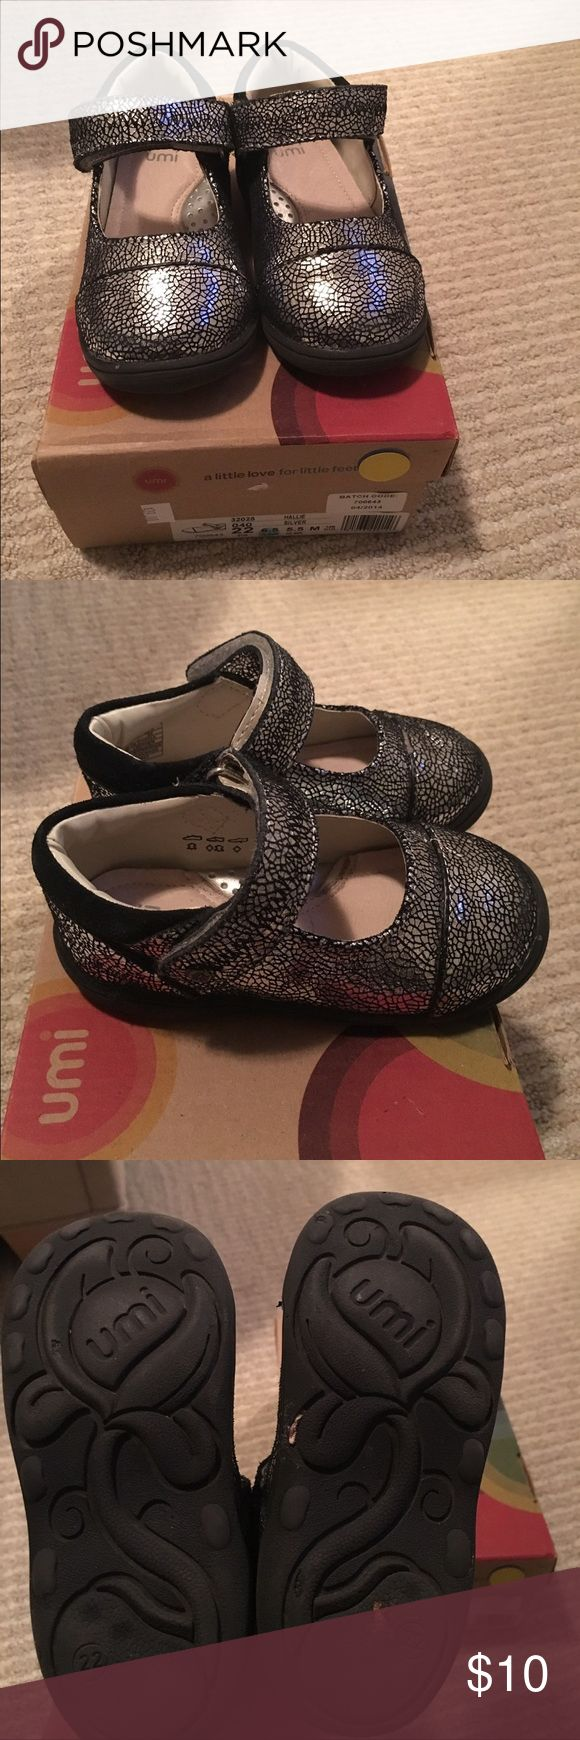 Size 22 (6.5) umi toddler girls shoes Beautiful toddler girls party shoes in excellent condition. They were worn less than 10 times. They are a size 22 (6.5) according to the size chart, but they run big. My daughter wore them when she was a 6.5/7. Umi Shoes Dress Shoes